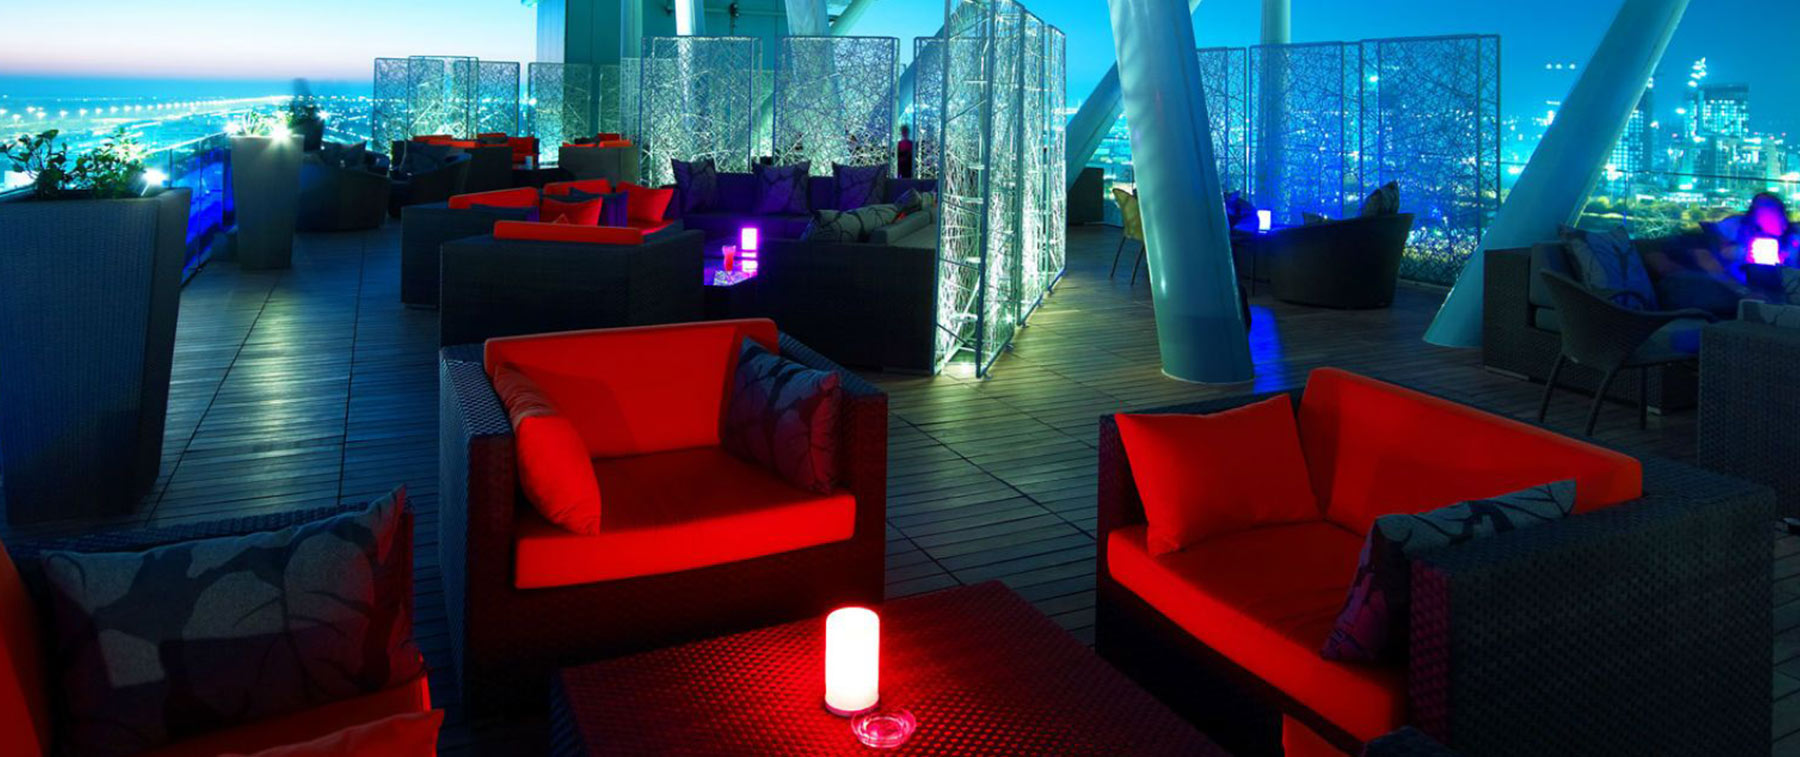 Relax 12 hotel contact us